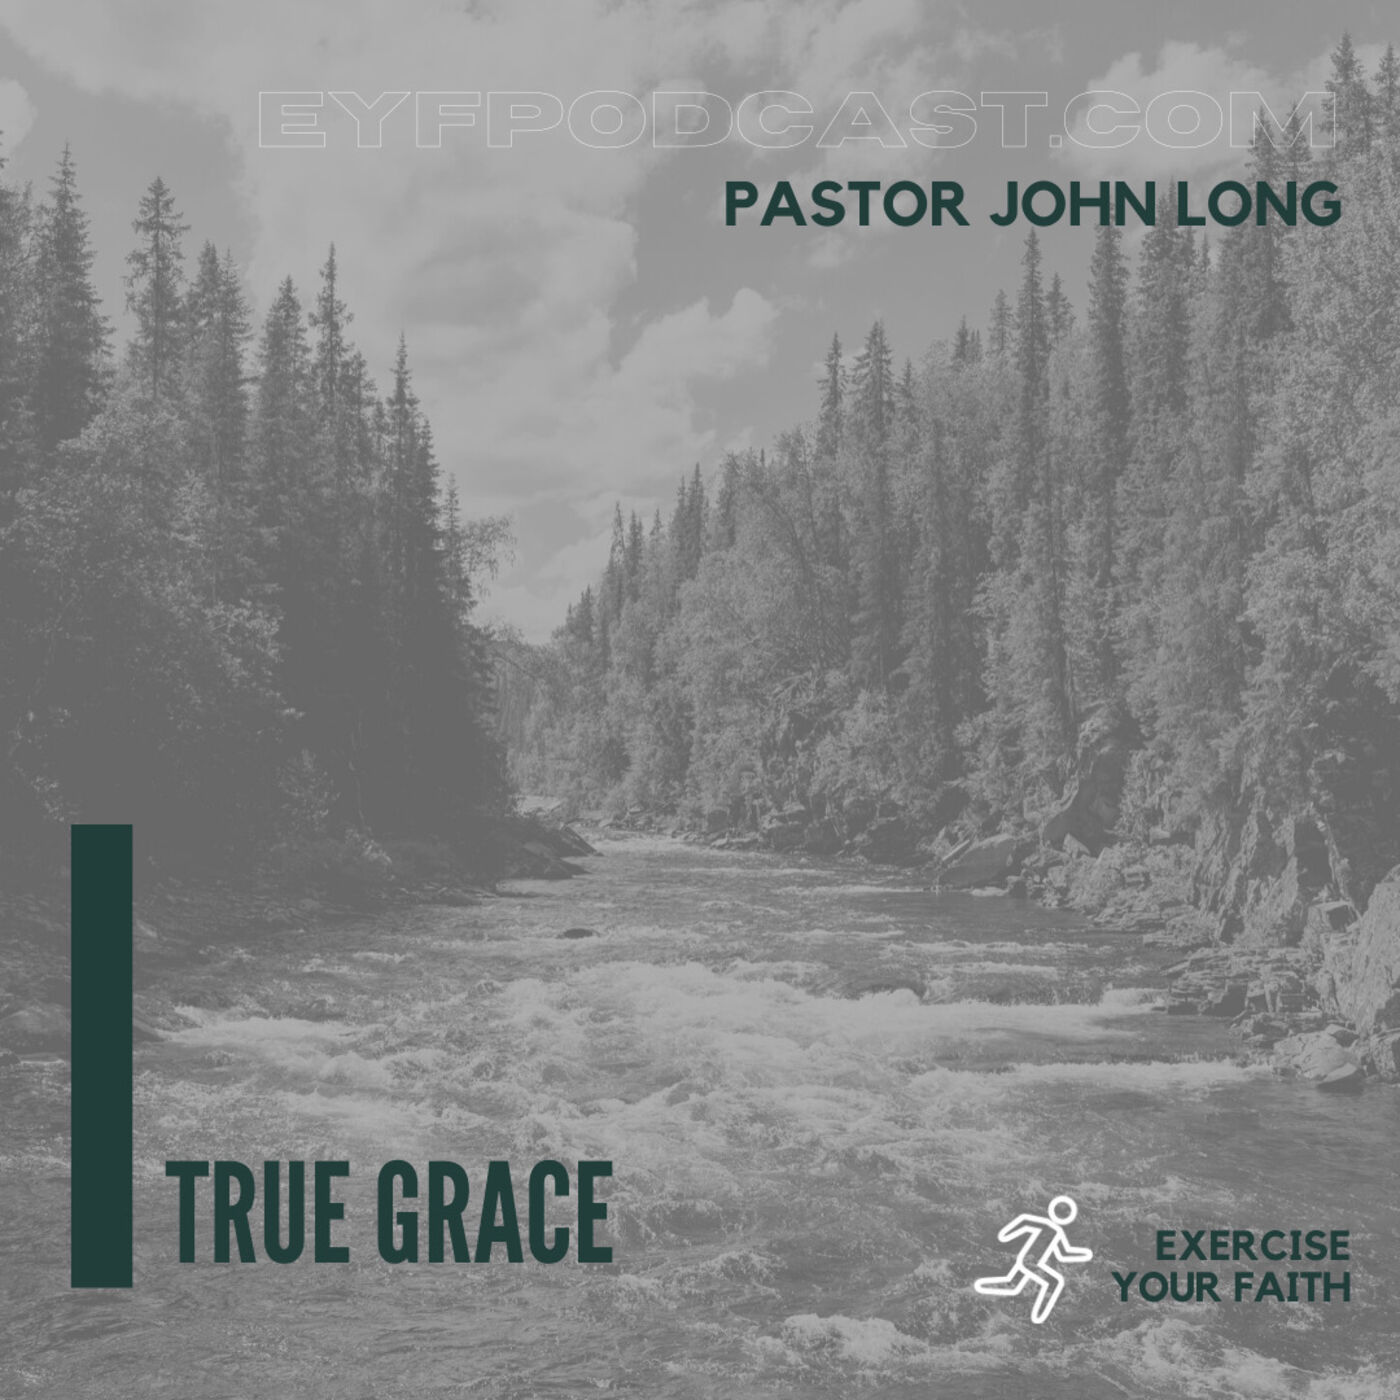 EYFPodcast- Exercise Your Faith and receive freedom and rest through God's grace. A conversation with pastor John Long